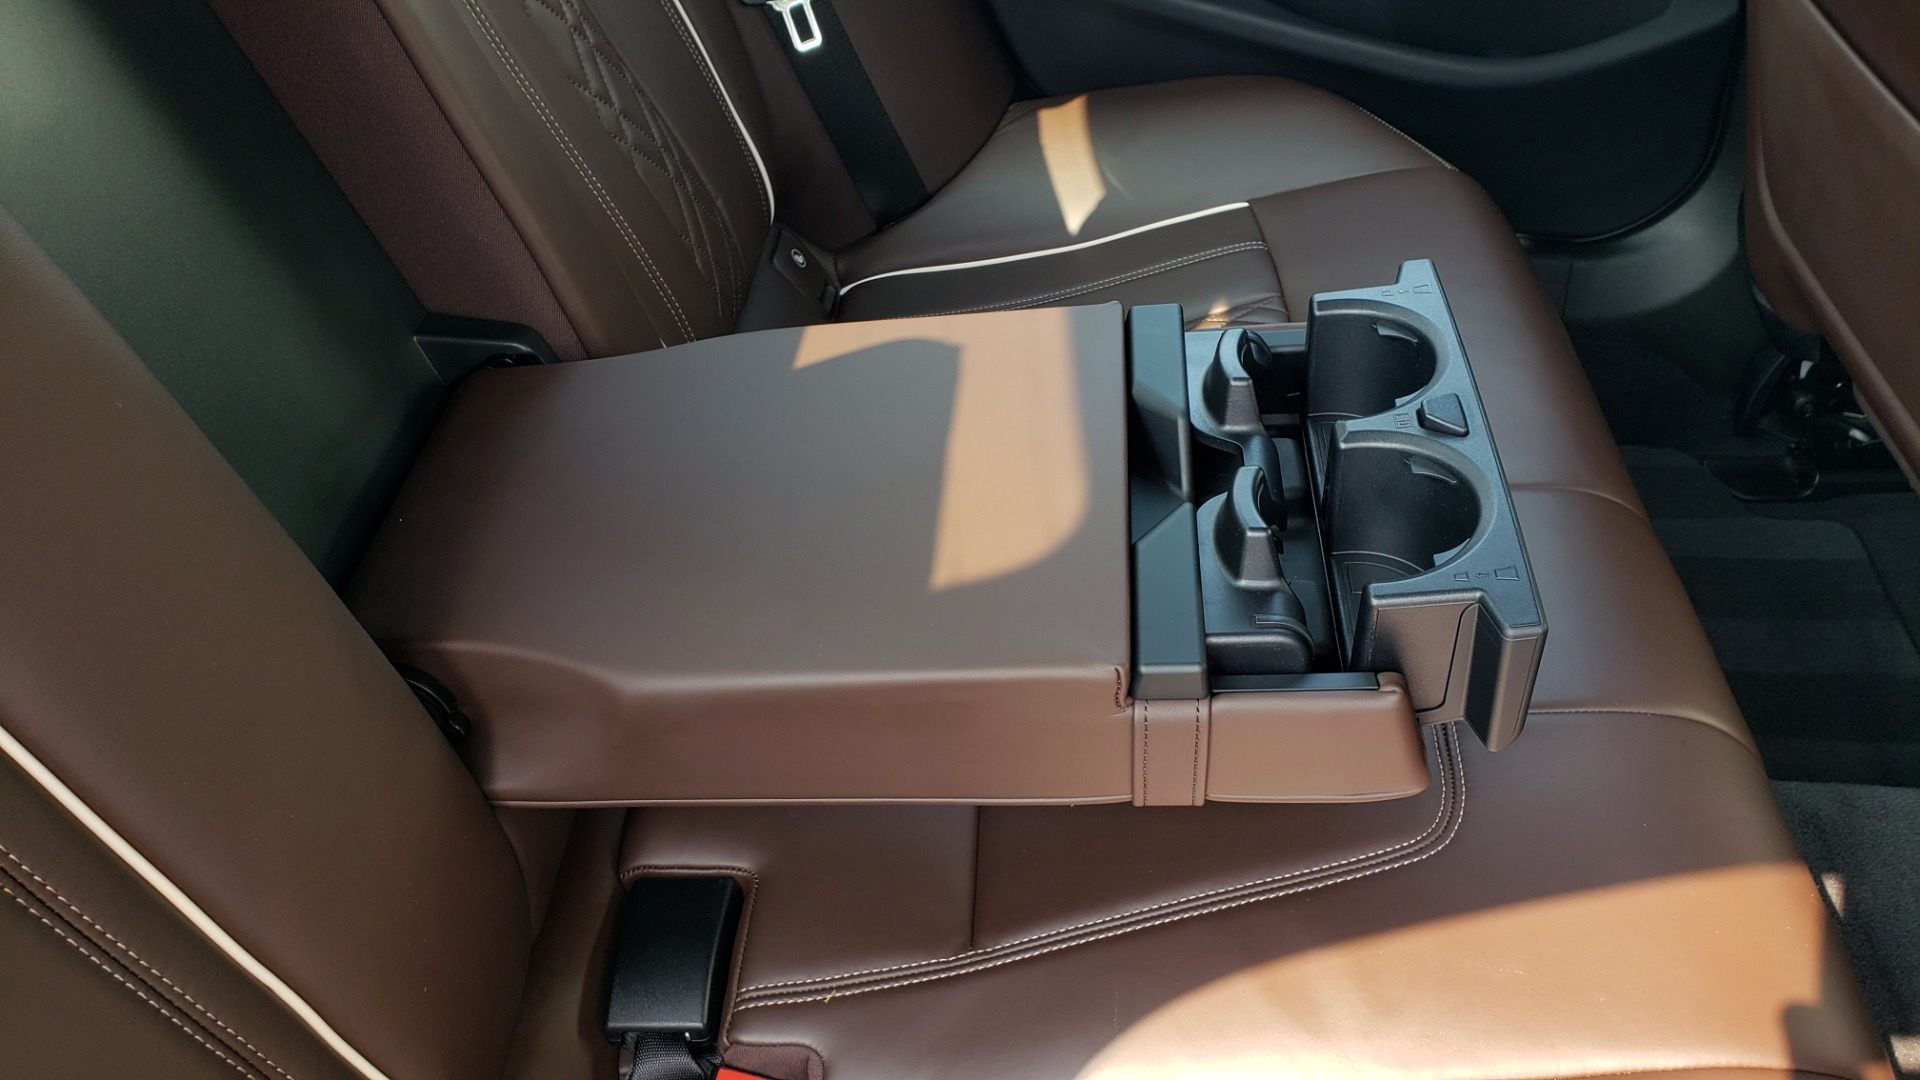 Used 2018 BMW 5 SERIES 540I XDRIVE PREMIUM / EXECUTIVE / LUXURY / H/K SND / REMOTE CONTROL PARKING for sale $40,995 at Formula Imports in Charlotte NC 28227 70